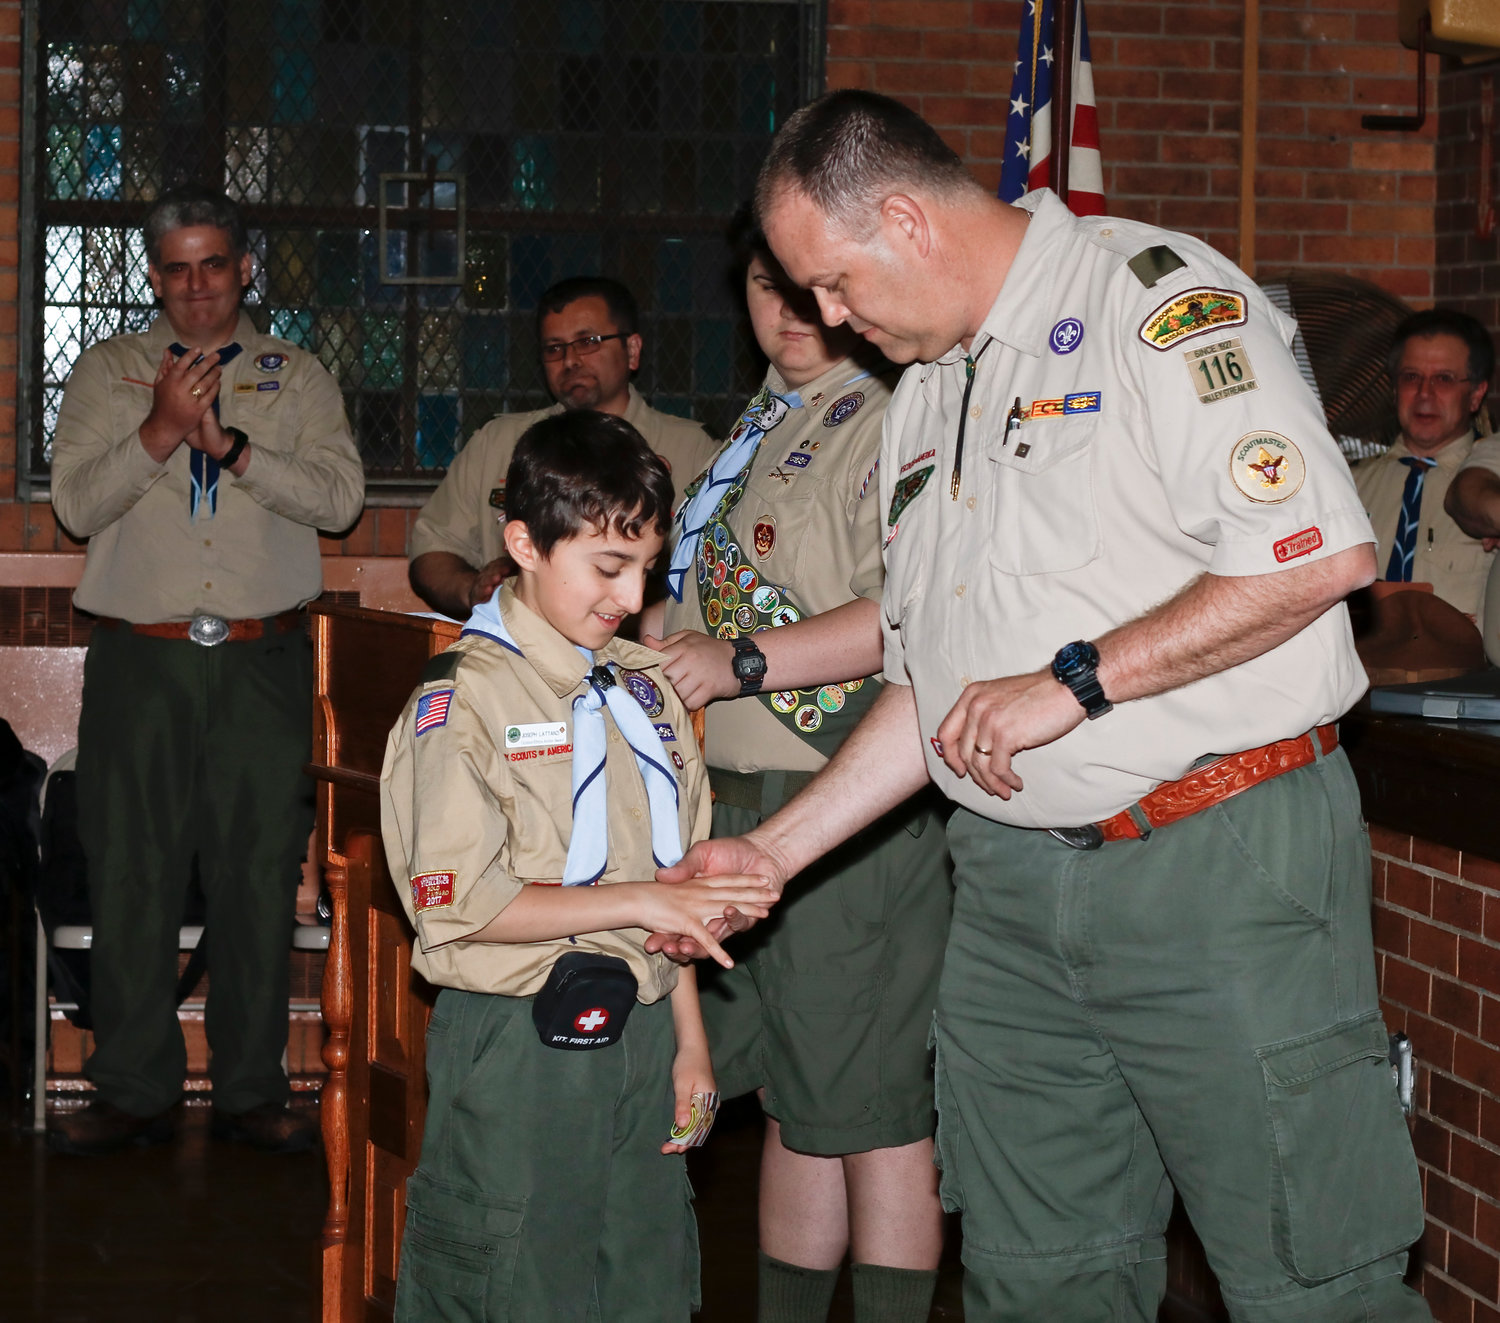 Joseph Lattanzi received the Recruiter Award from Scoutmaster Andy Mihalick.